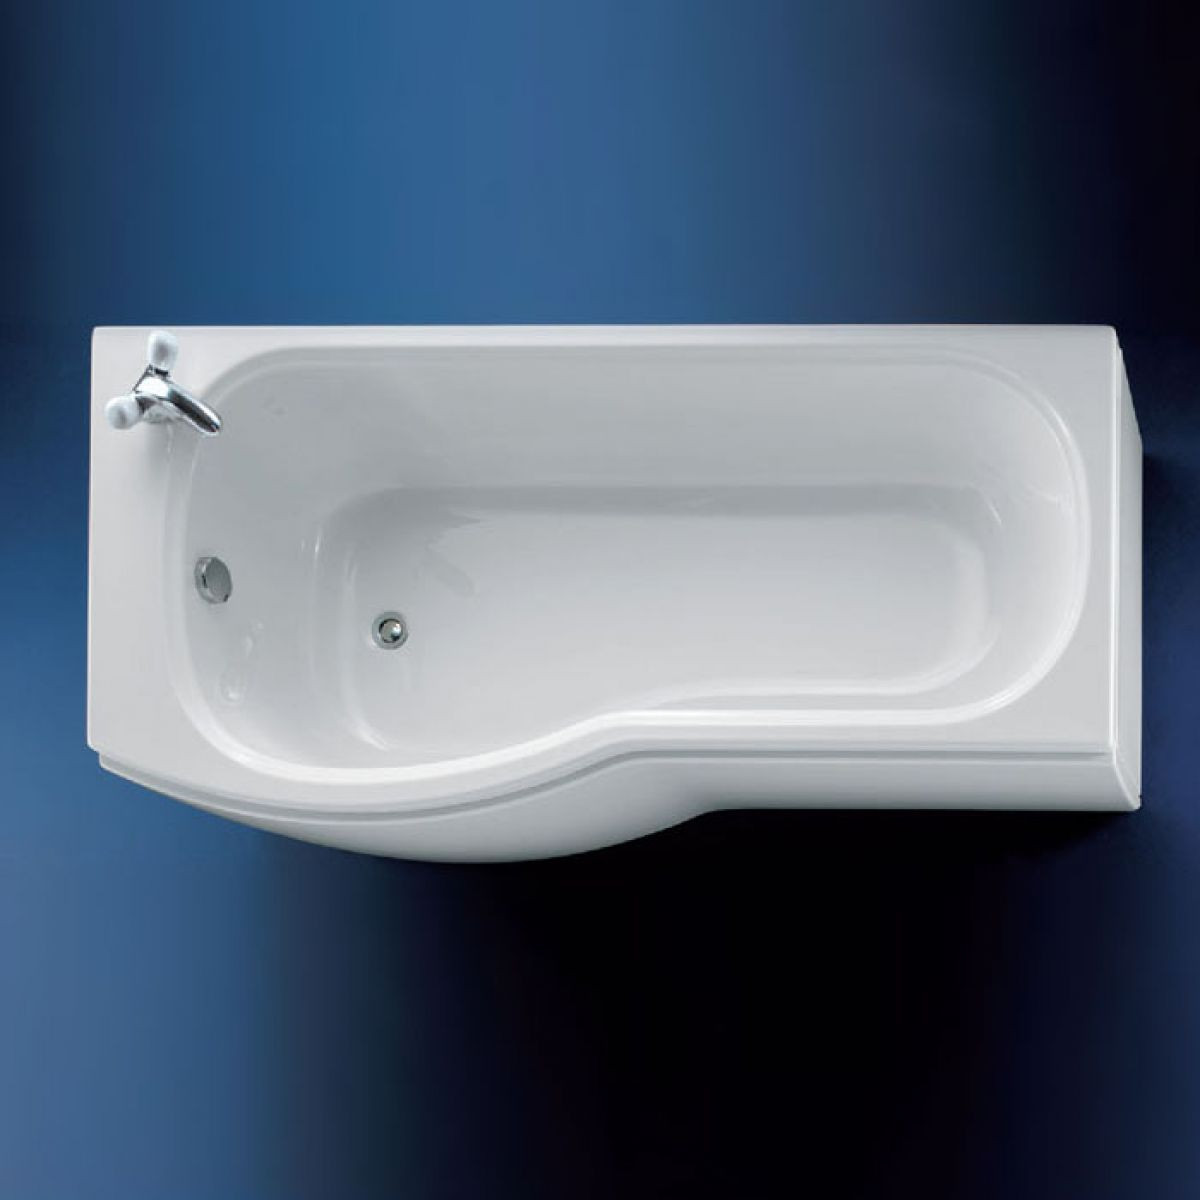 Ideal Standard Alto Shower Bath Uk Bathrooms